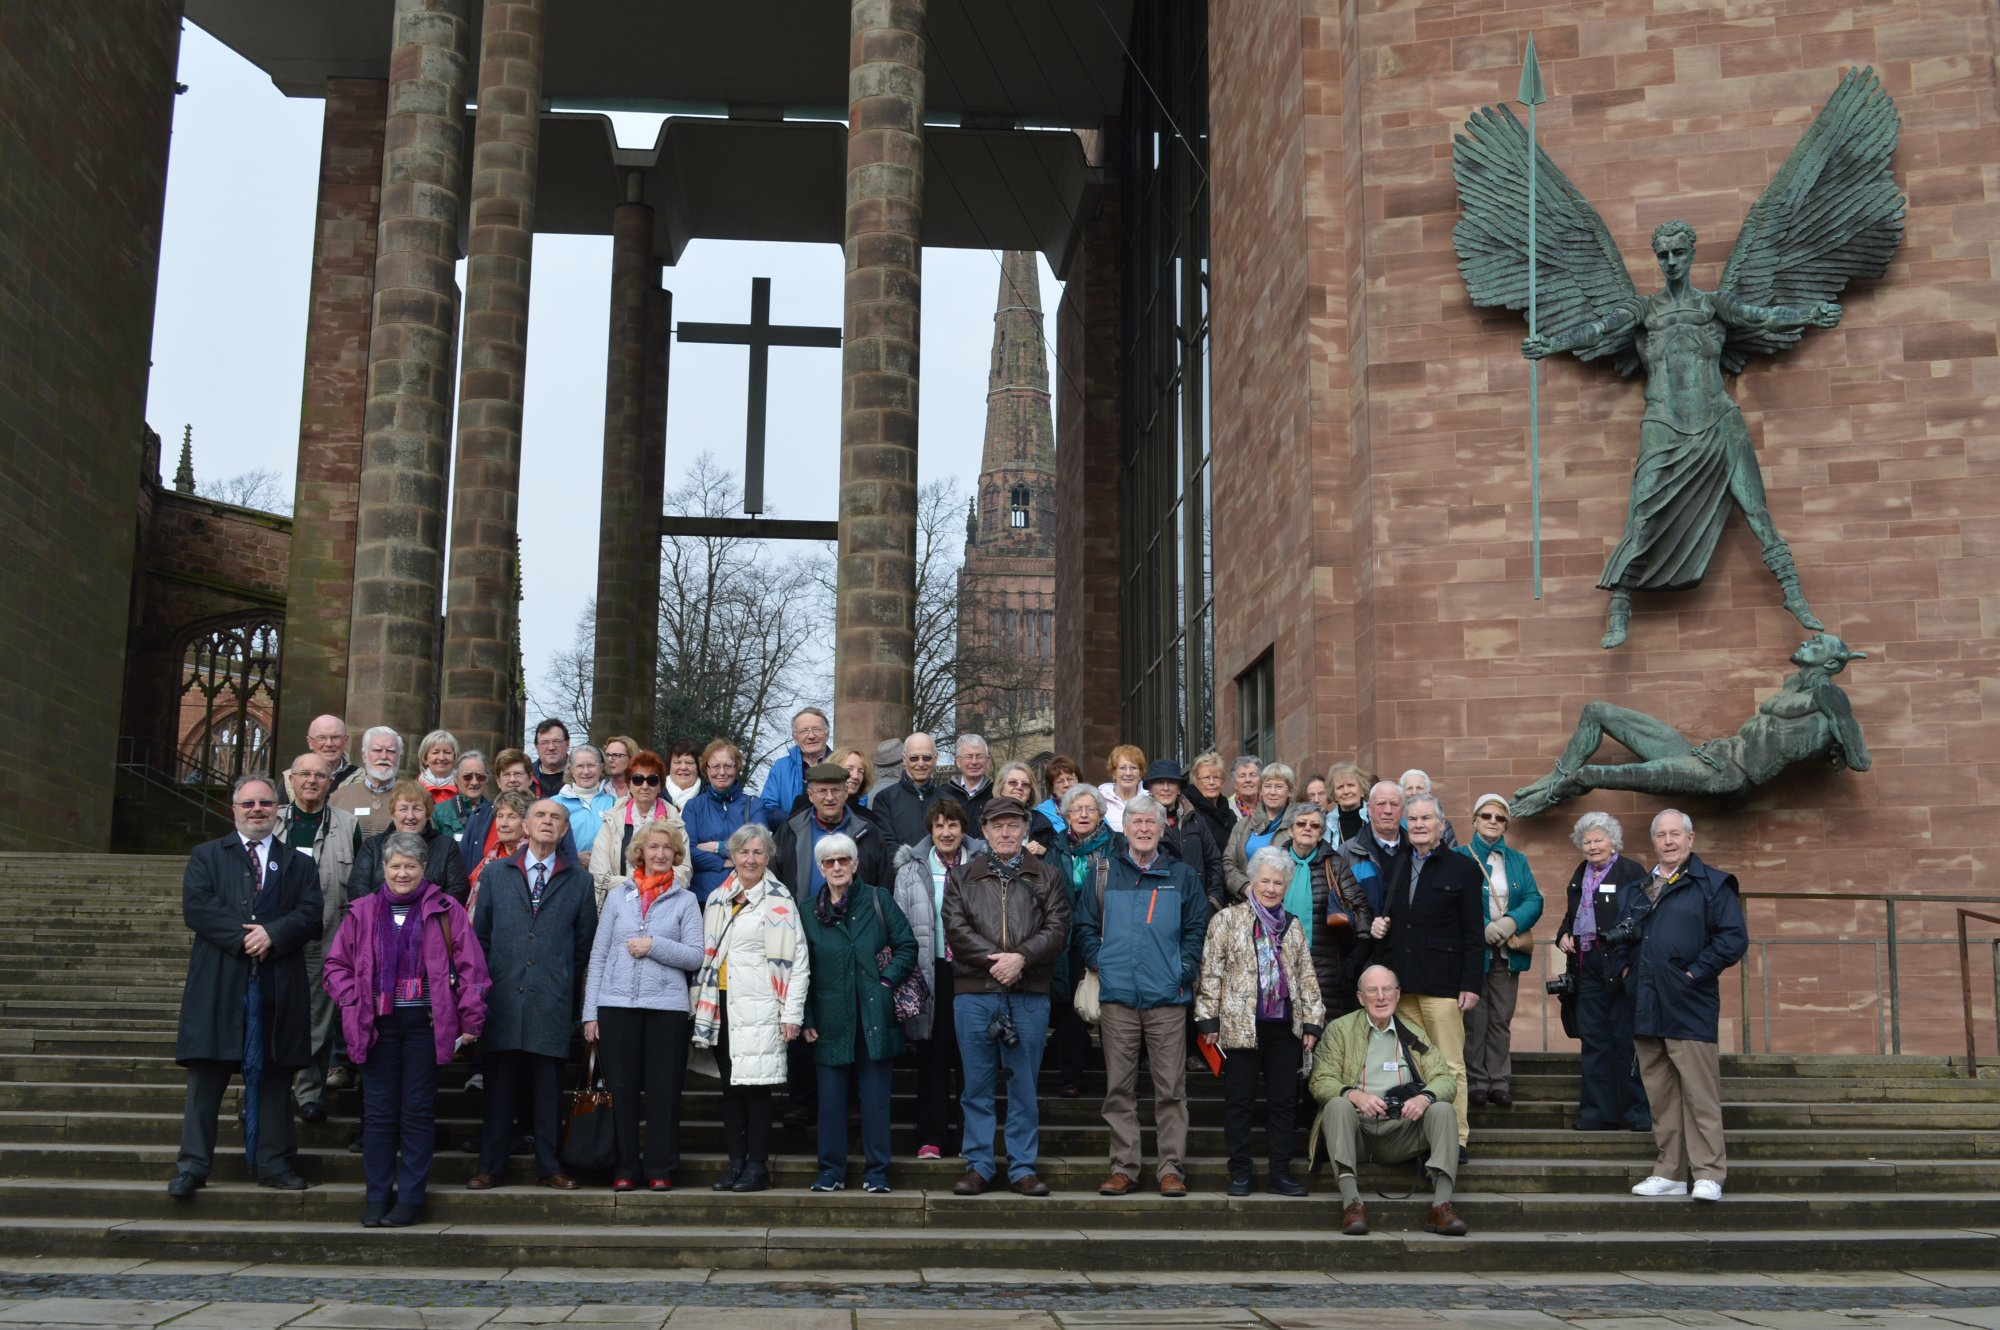 At Coventry Cathedral